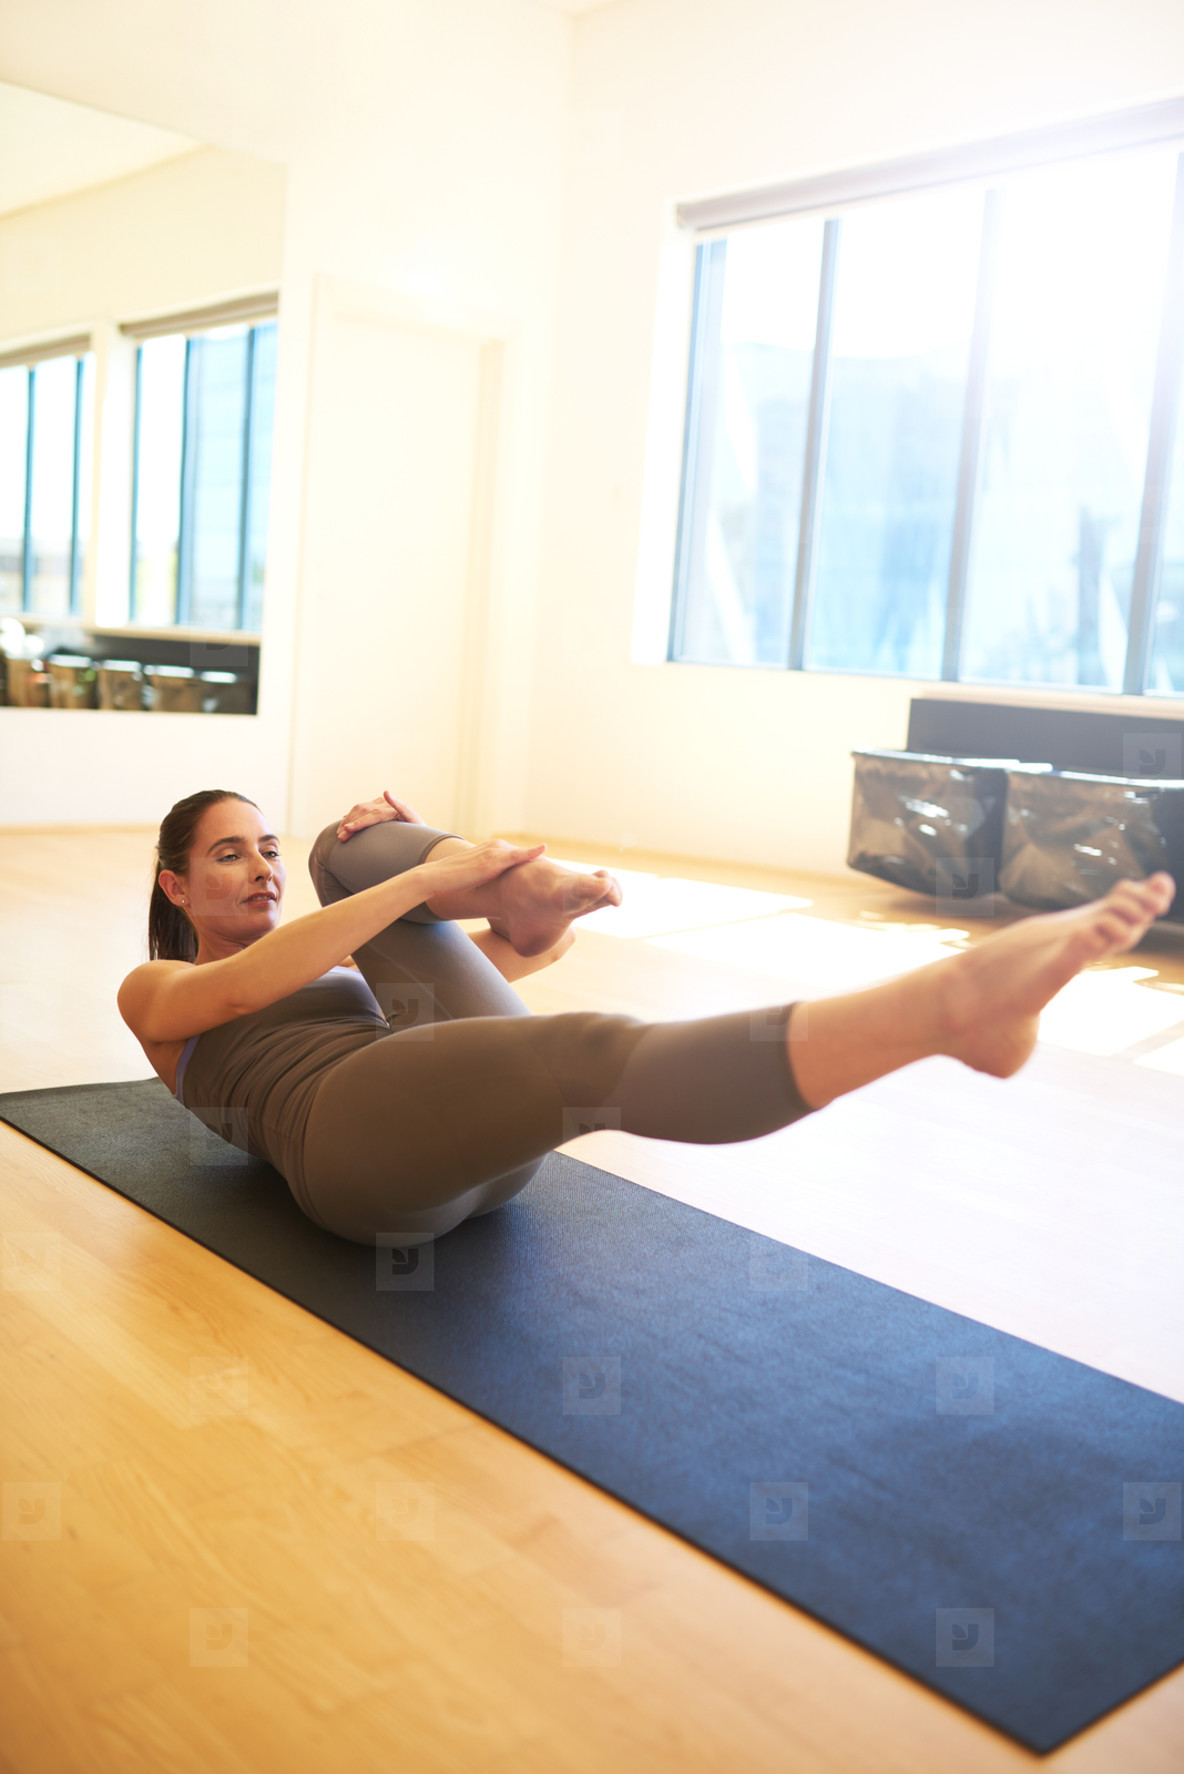 Woman Practicing Pilates on Floor Mat in Studio